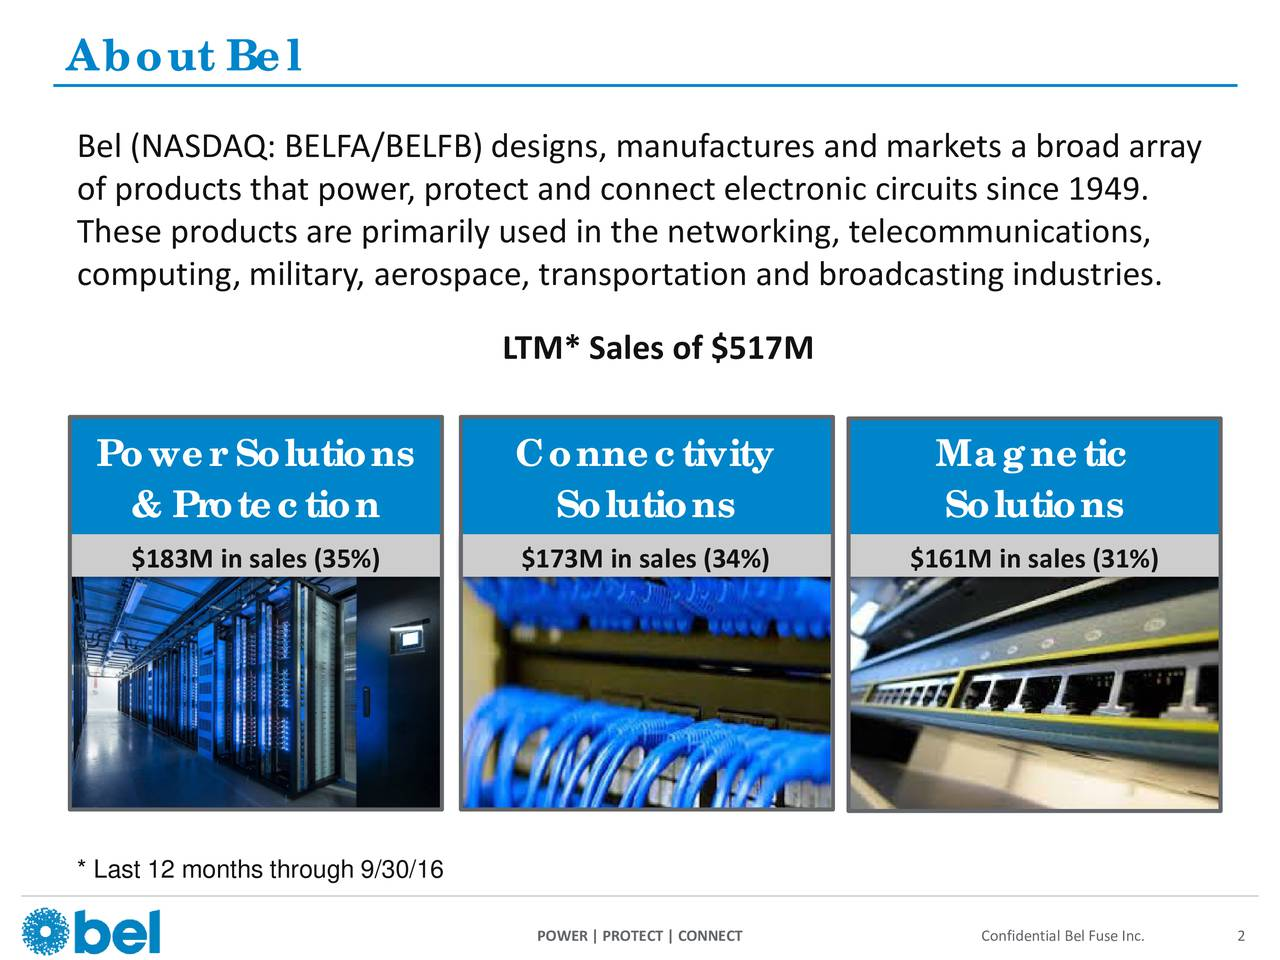 Bel (NASDAQ: BELFA/BELFB) designs, manufactures and markets a broad array of products that power, protect and connect electronic circuits since 1949. These products are primarily used in the networking, telecommunications, computing, military, aerospace, transportation and broadcasting industries. LTM*Sales of $517M Power Solutions Connectivity Magnetic & Protection Solutions Solutions $183M in sales (35%) $173M in sales (34%) $161M in sales (31%) * Last 12 months through 9/30/16 POWER | PROTECT | CONNECT Confidential Bel 2use Inc.